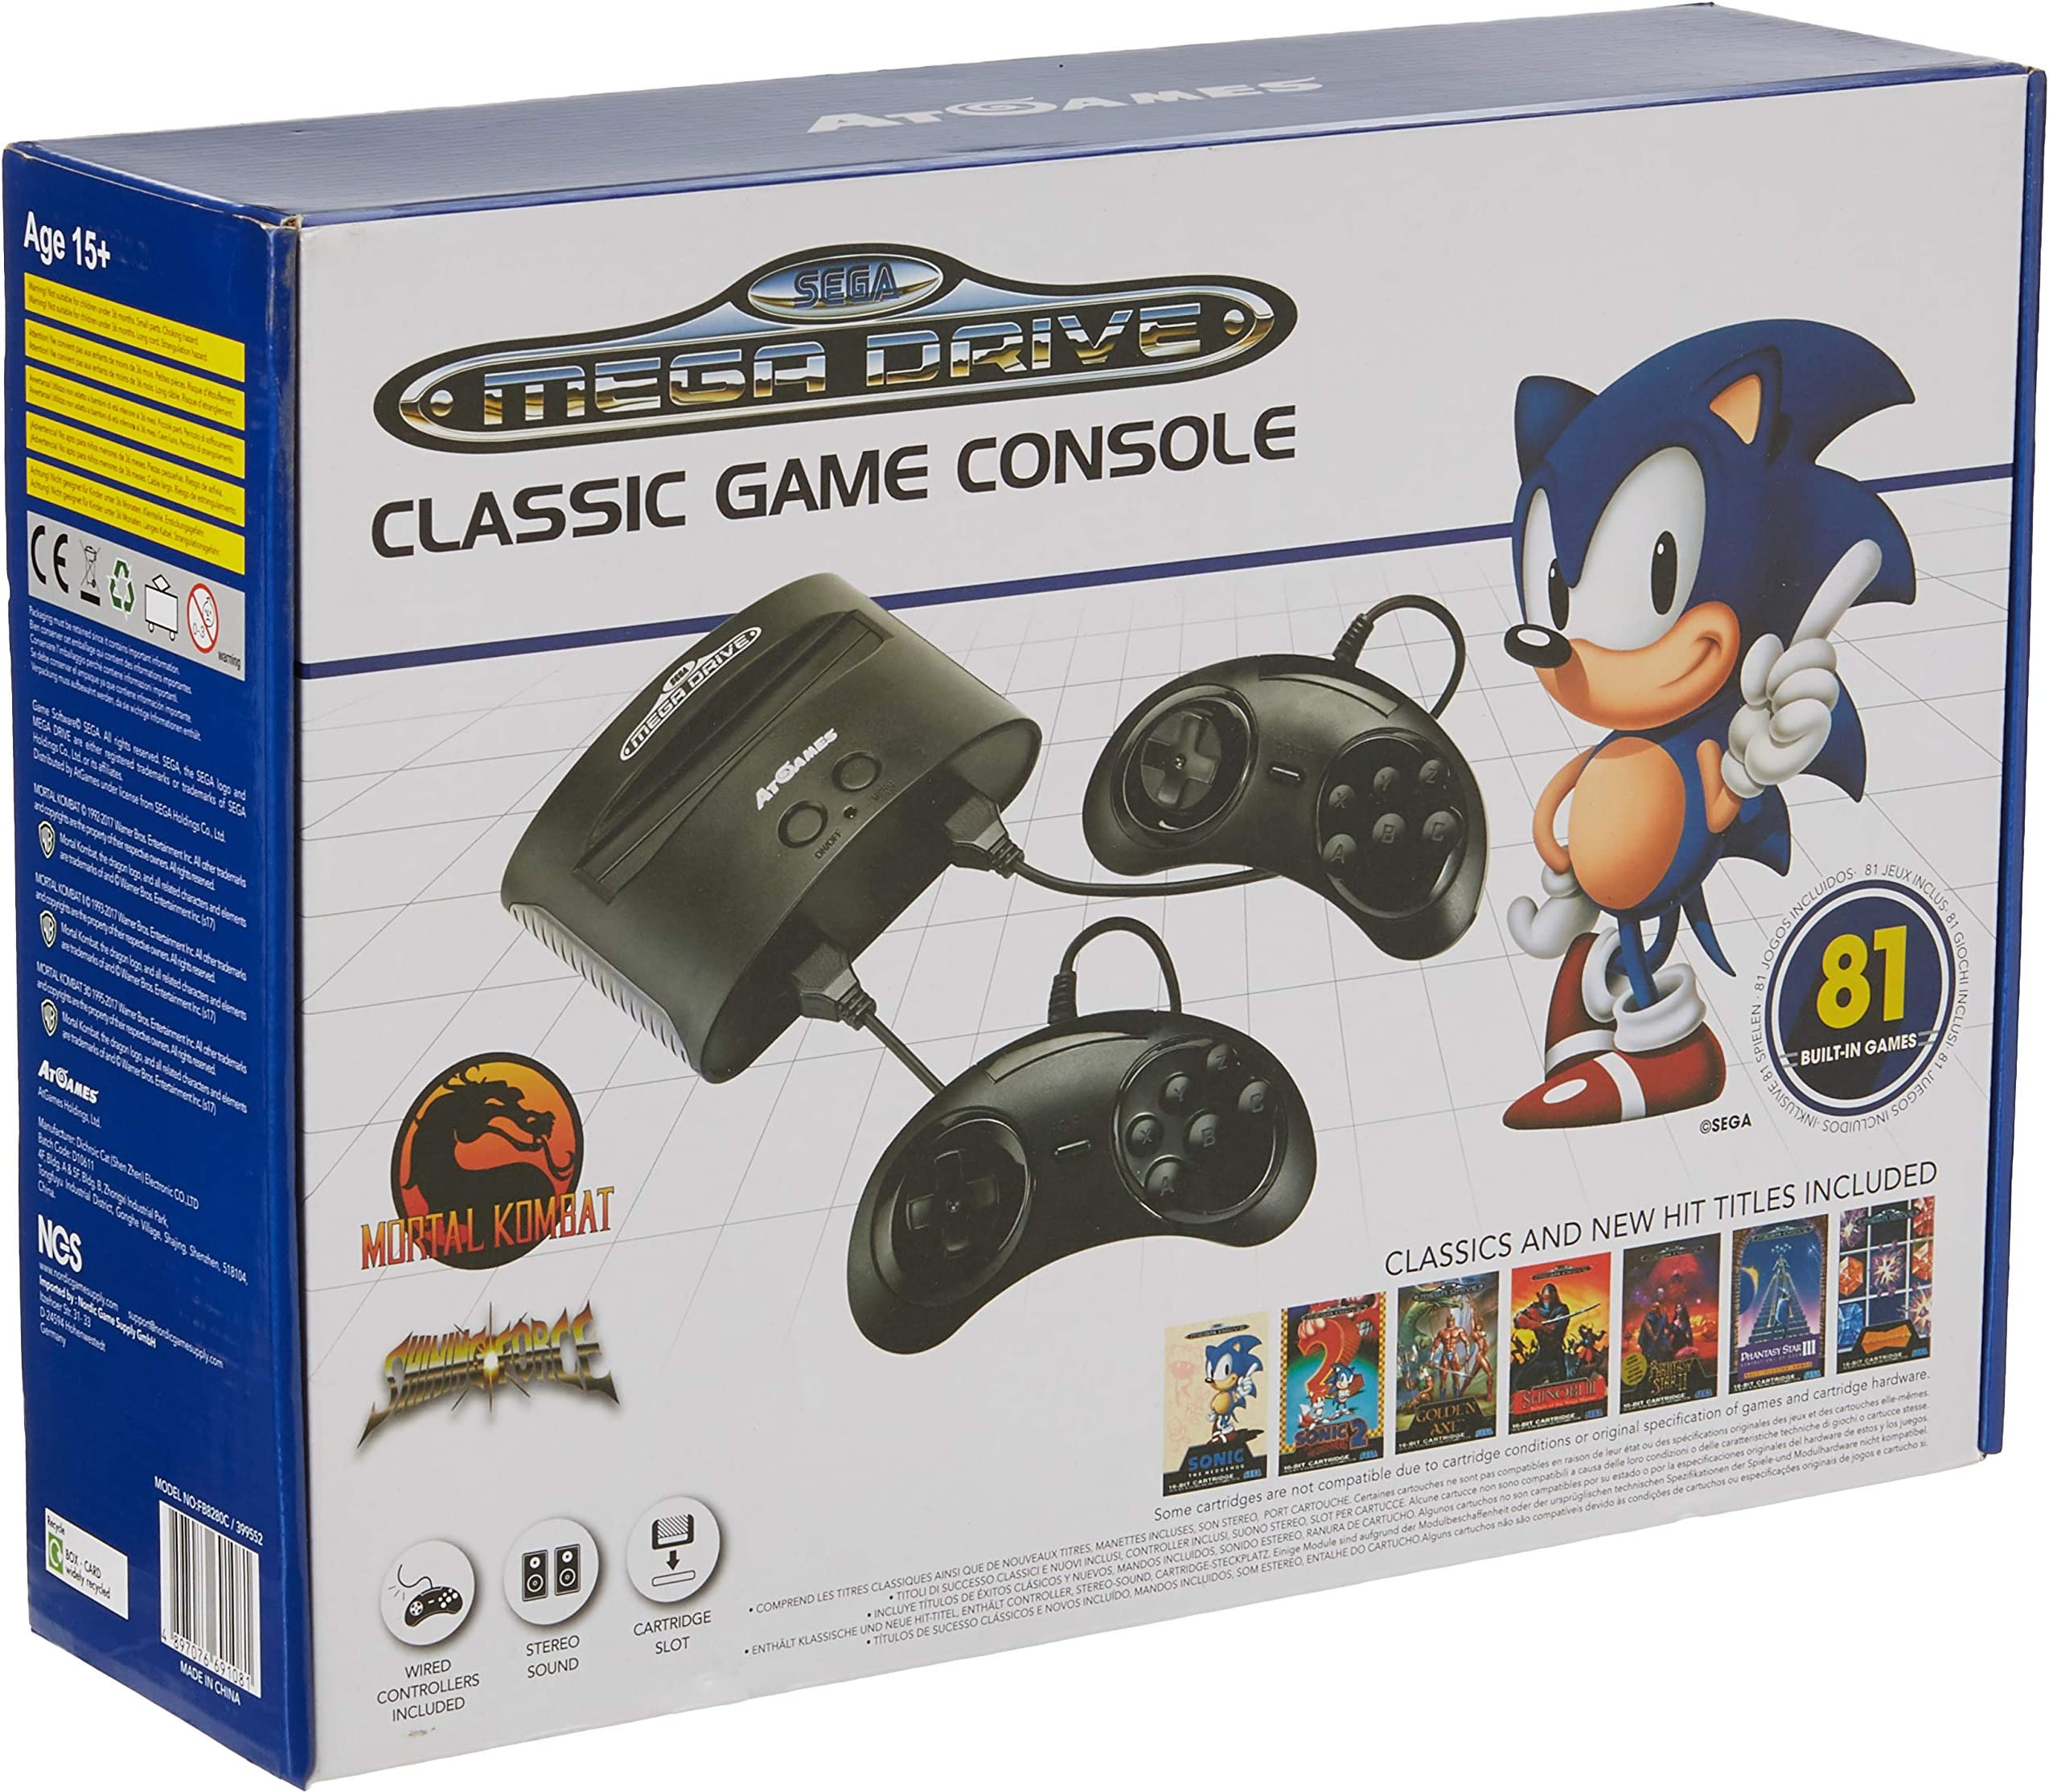 Amazon.com: Sega Genesis Classic Game Console - Sega Gear: Video Games